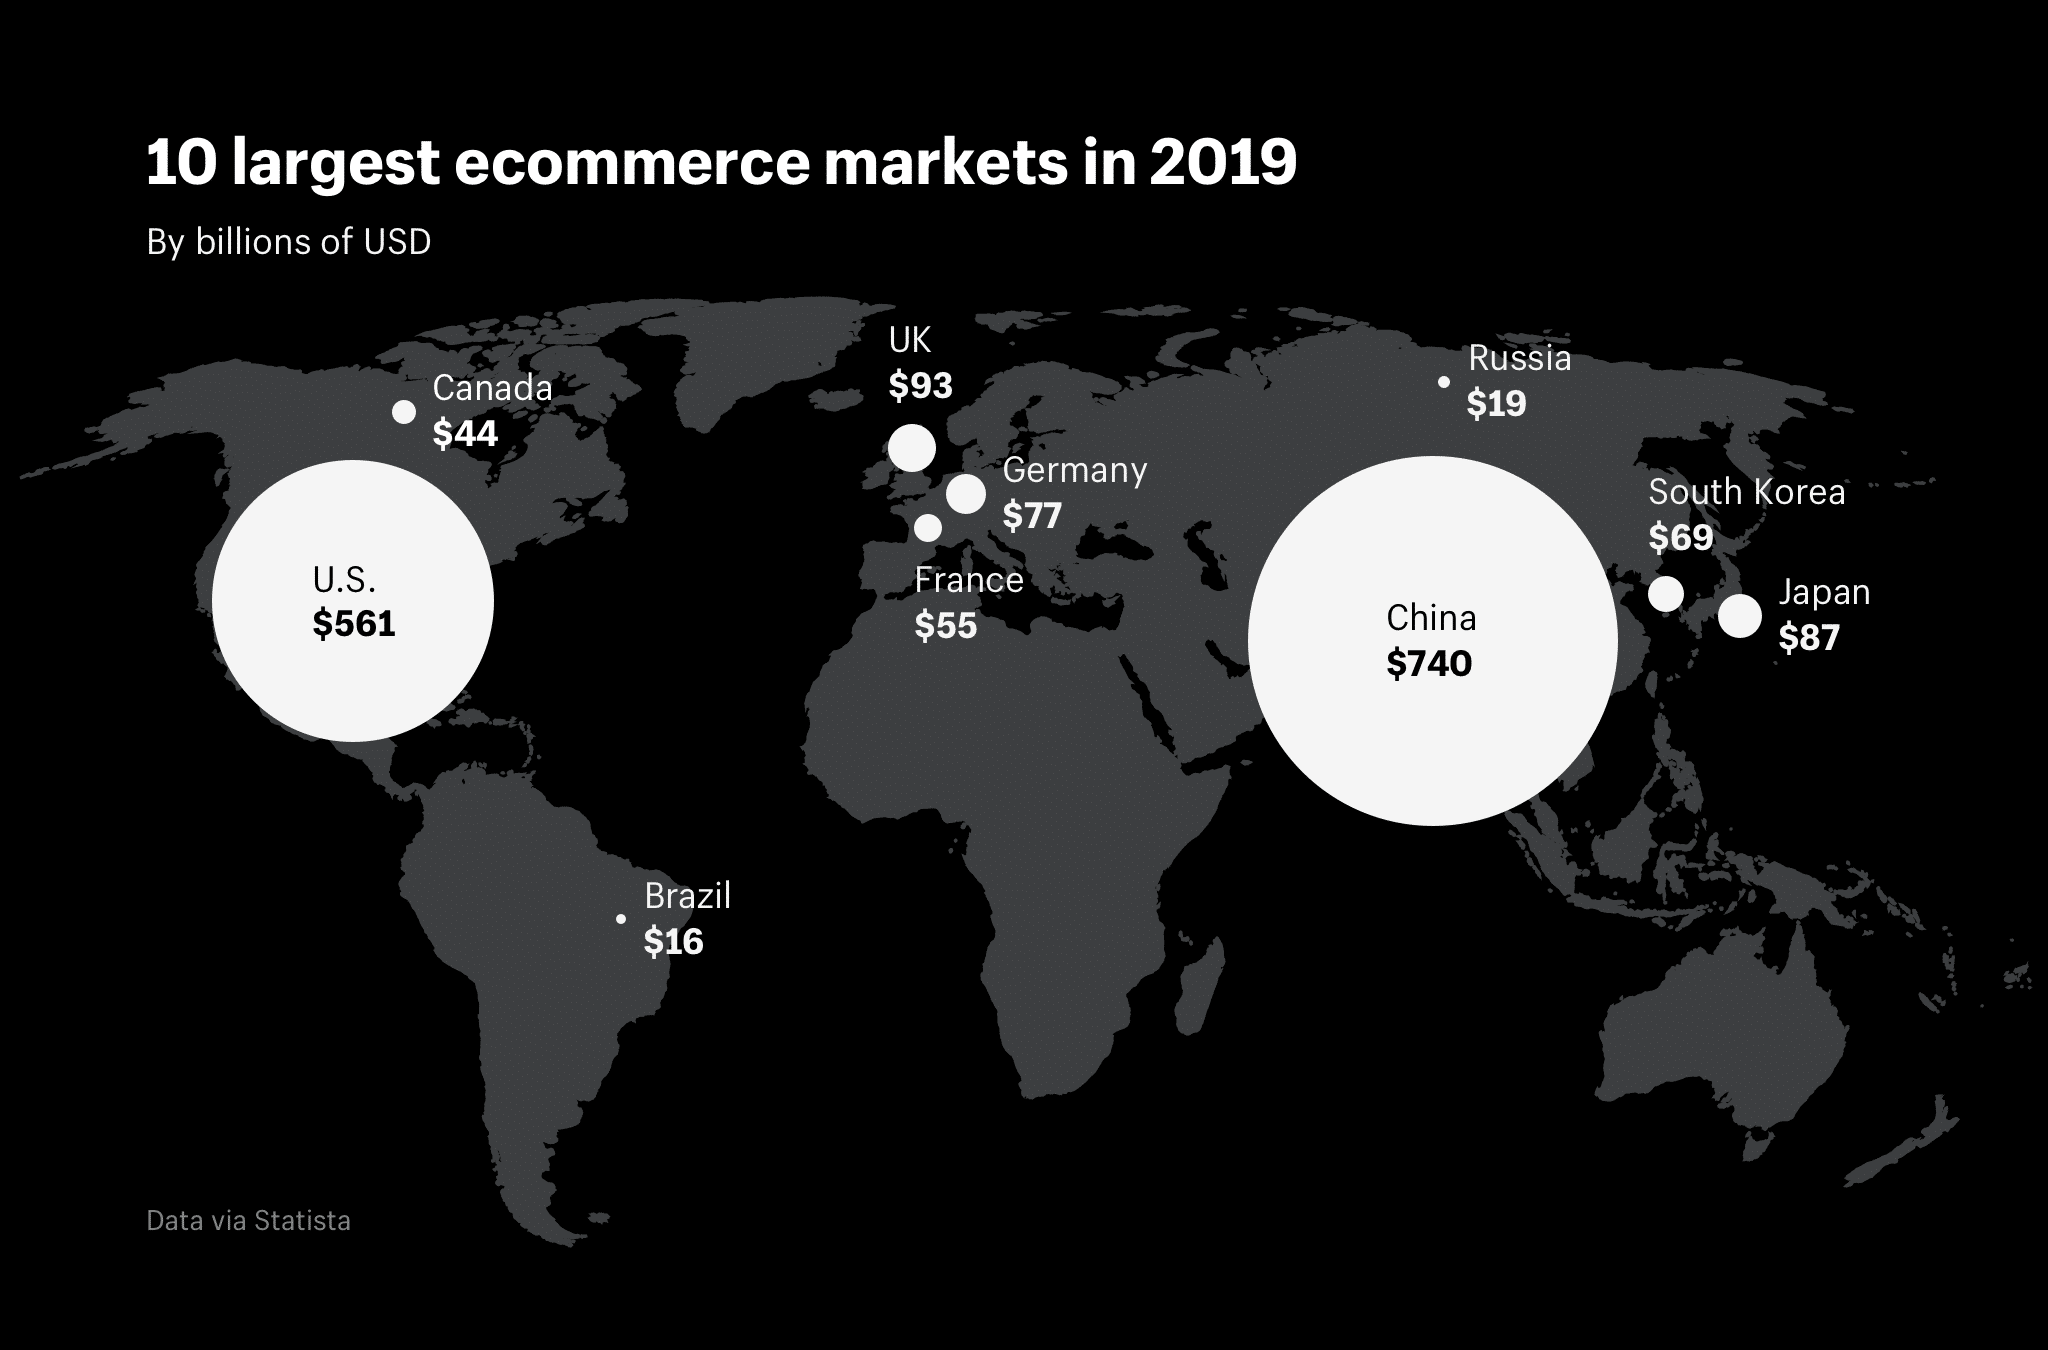 Top 10 largest ecommerce markets